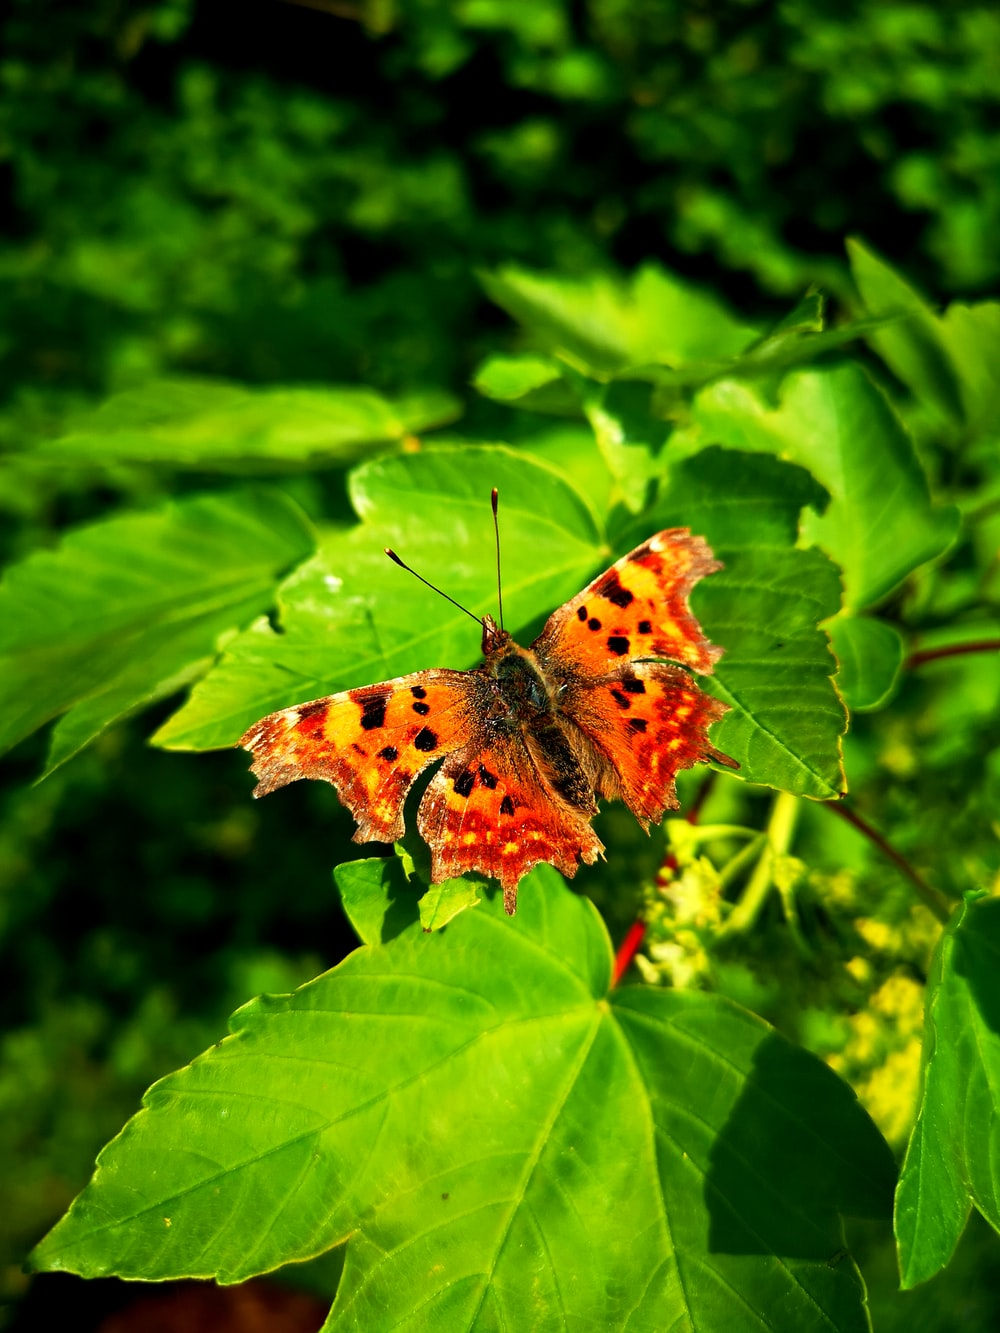 brown and black butterfly on green leaves